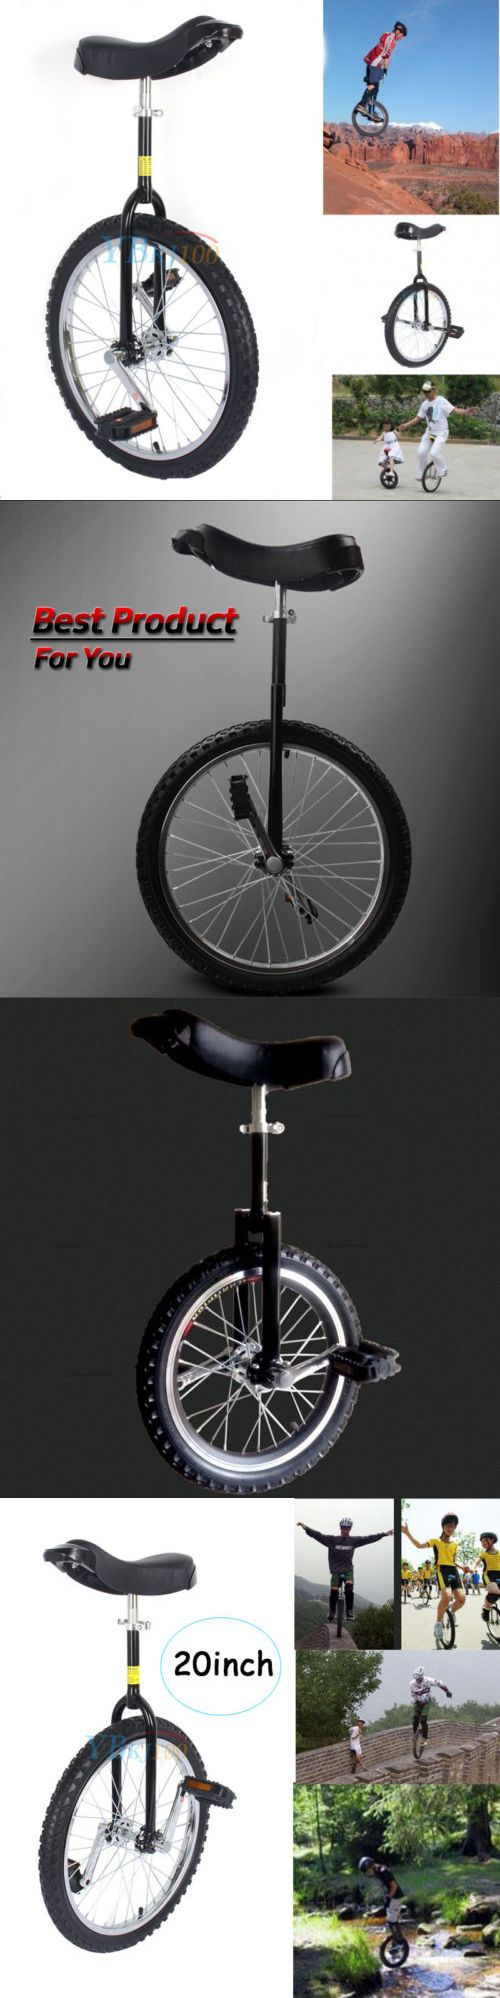 Other Cycling 2904: New Black 20 Inch Unicycle Uni Cycle Scooter Circus Pro Bike Youth Adult -> BUY IT NOW ONLY: $46.99 on eBay!